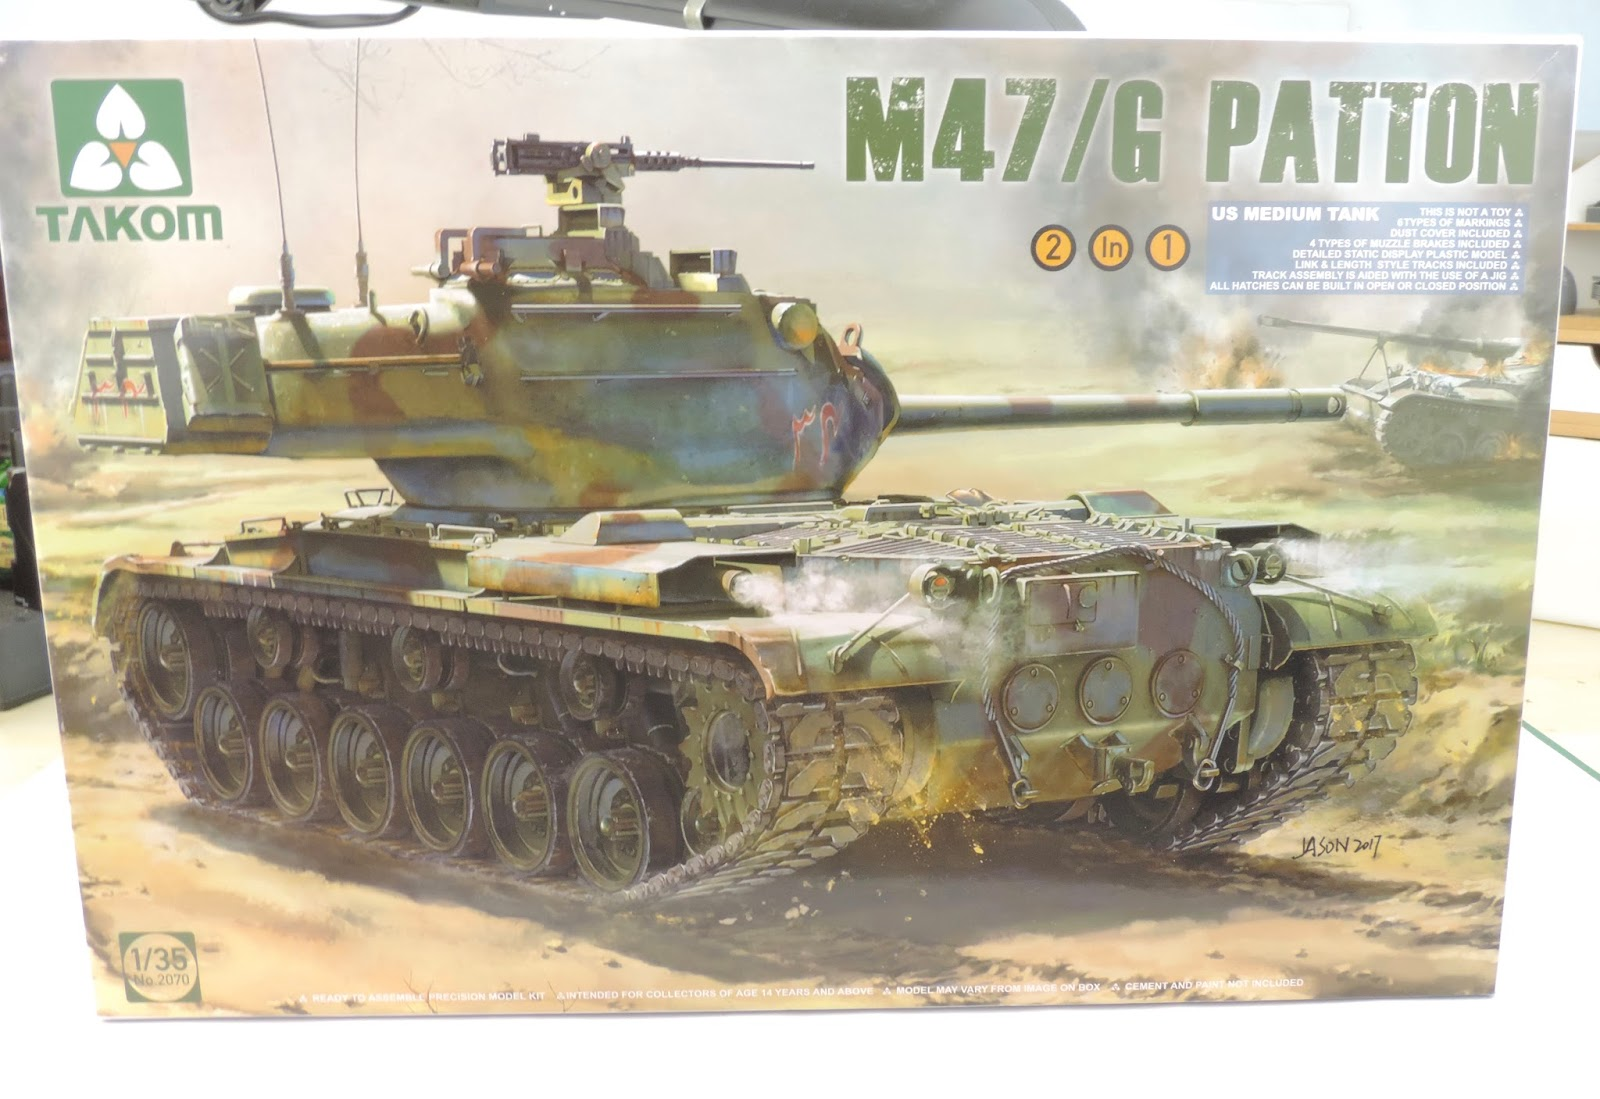 Pete's Model World : Takom M47/G Patton